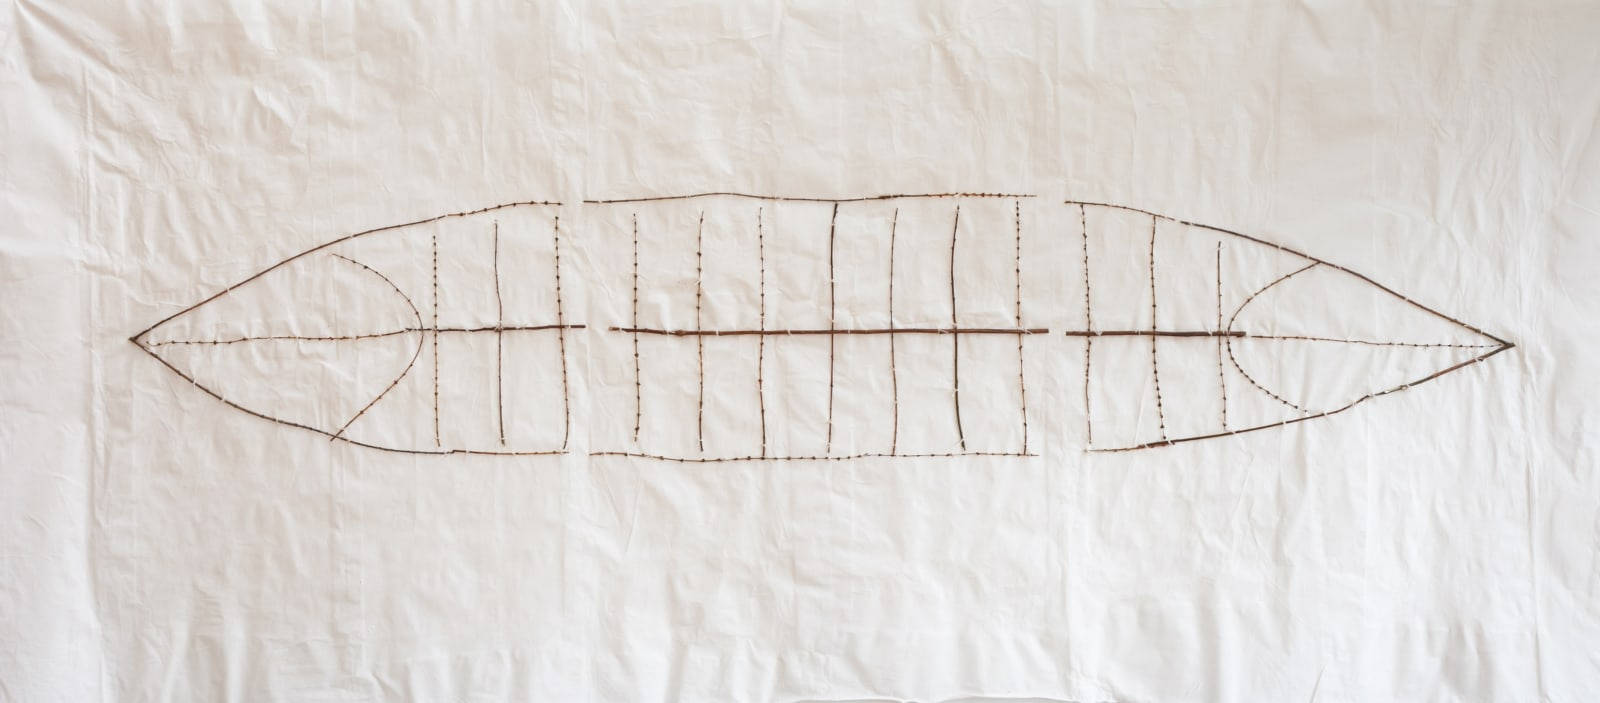 Bastienne Schmidt Canoe Grid, 2021 Sewn muslin fabric pigmented and tinted 45 x1 03 in. (BS 304) $17,000